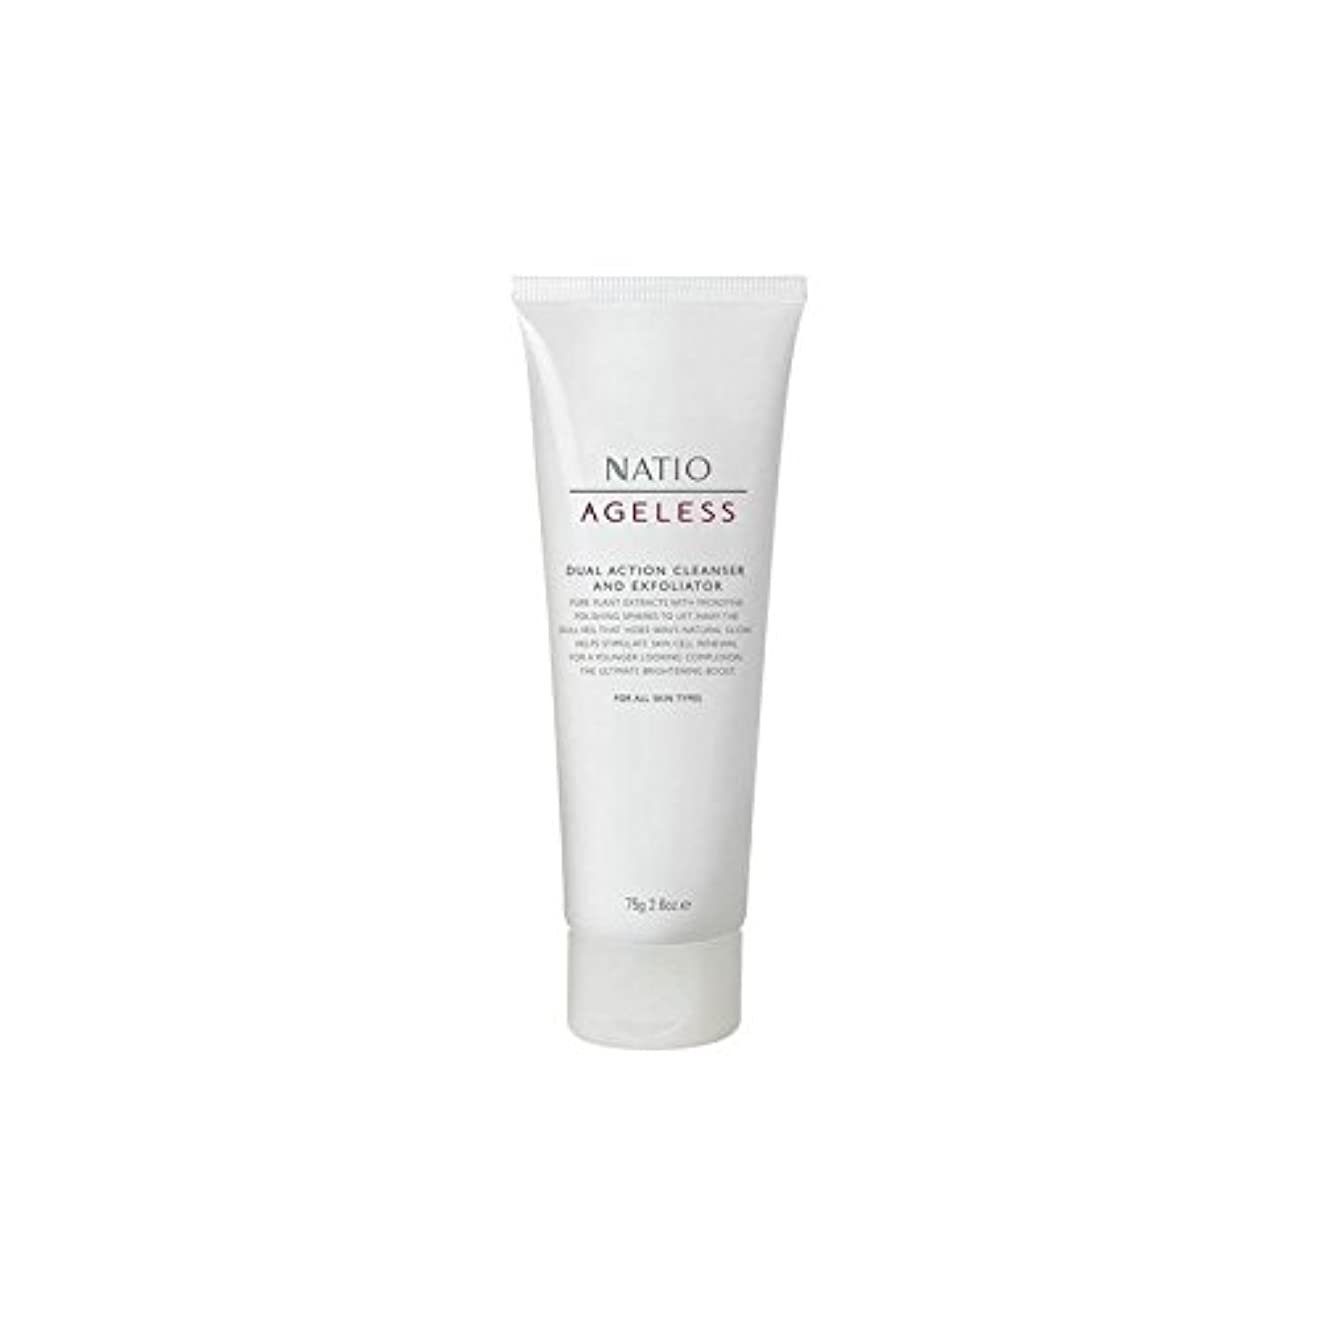 Natio Dual Action Cleanser And Exfoliator (75G) - デュアルアクションクレンザーとエクスフォリエーター(75グラム) [並行輸入品]